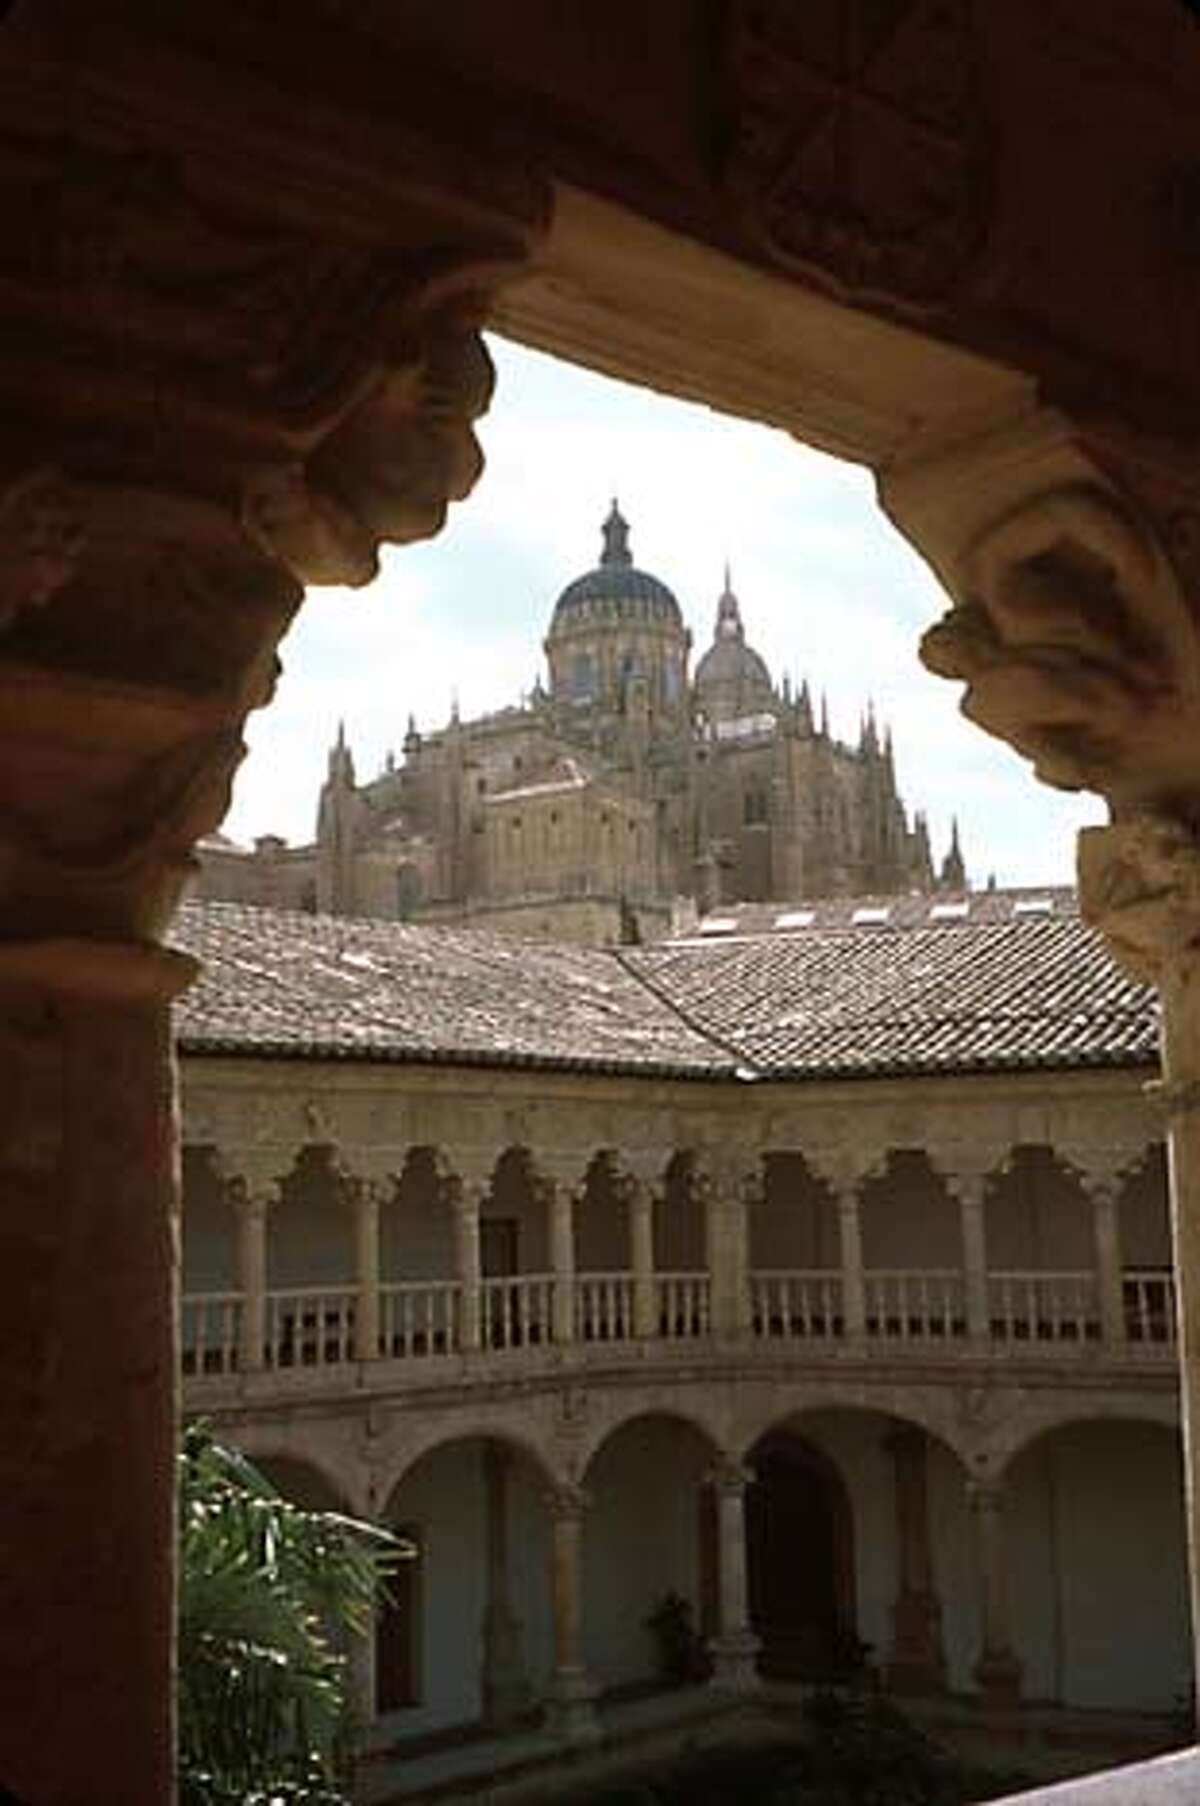 Salamanca, Spain The arches surrounding the courtyard at the Convento de las Duenas in Salamanca offer an iconic view of Spain. Photo by Mona Molarsky, special to the Chronicle